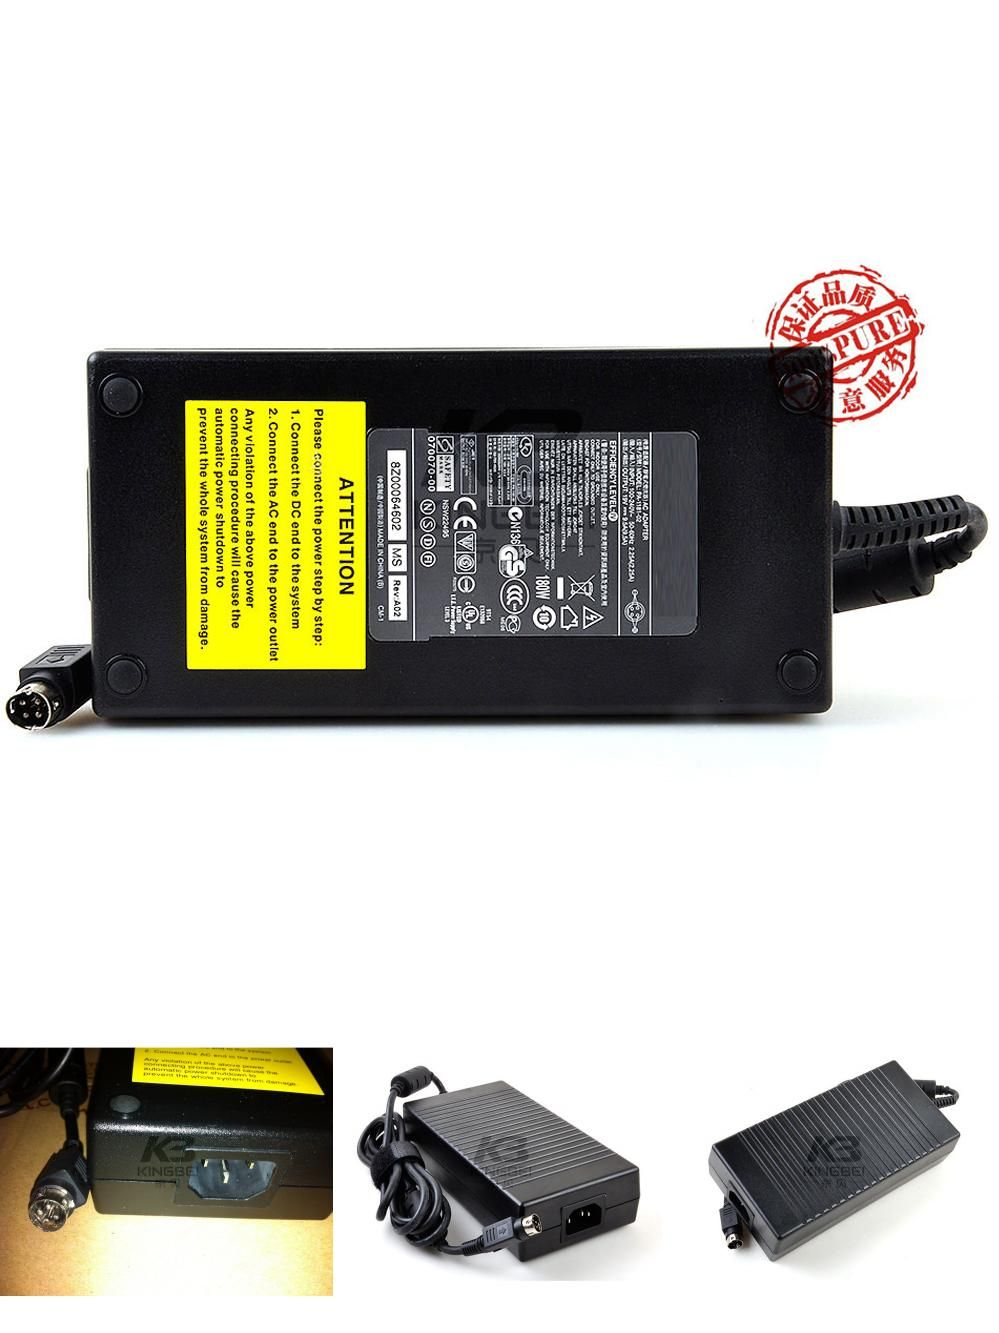 Visit To Buy 19v 9 5a 180w Power Supply For Ms Ae1111 All In On Laptop Ac Dc Adapter Charger For Liteon Batter Laptop Accessories Laptop Cheap Laptop Adapter